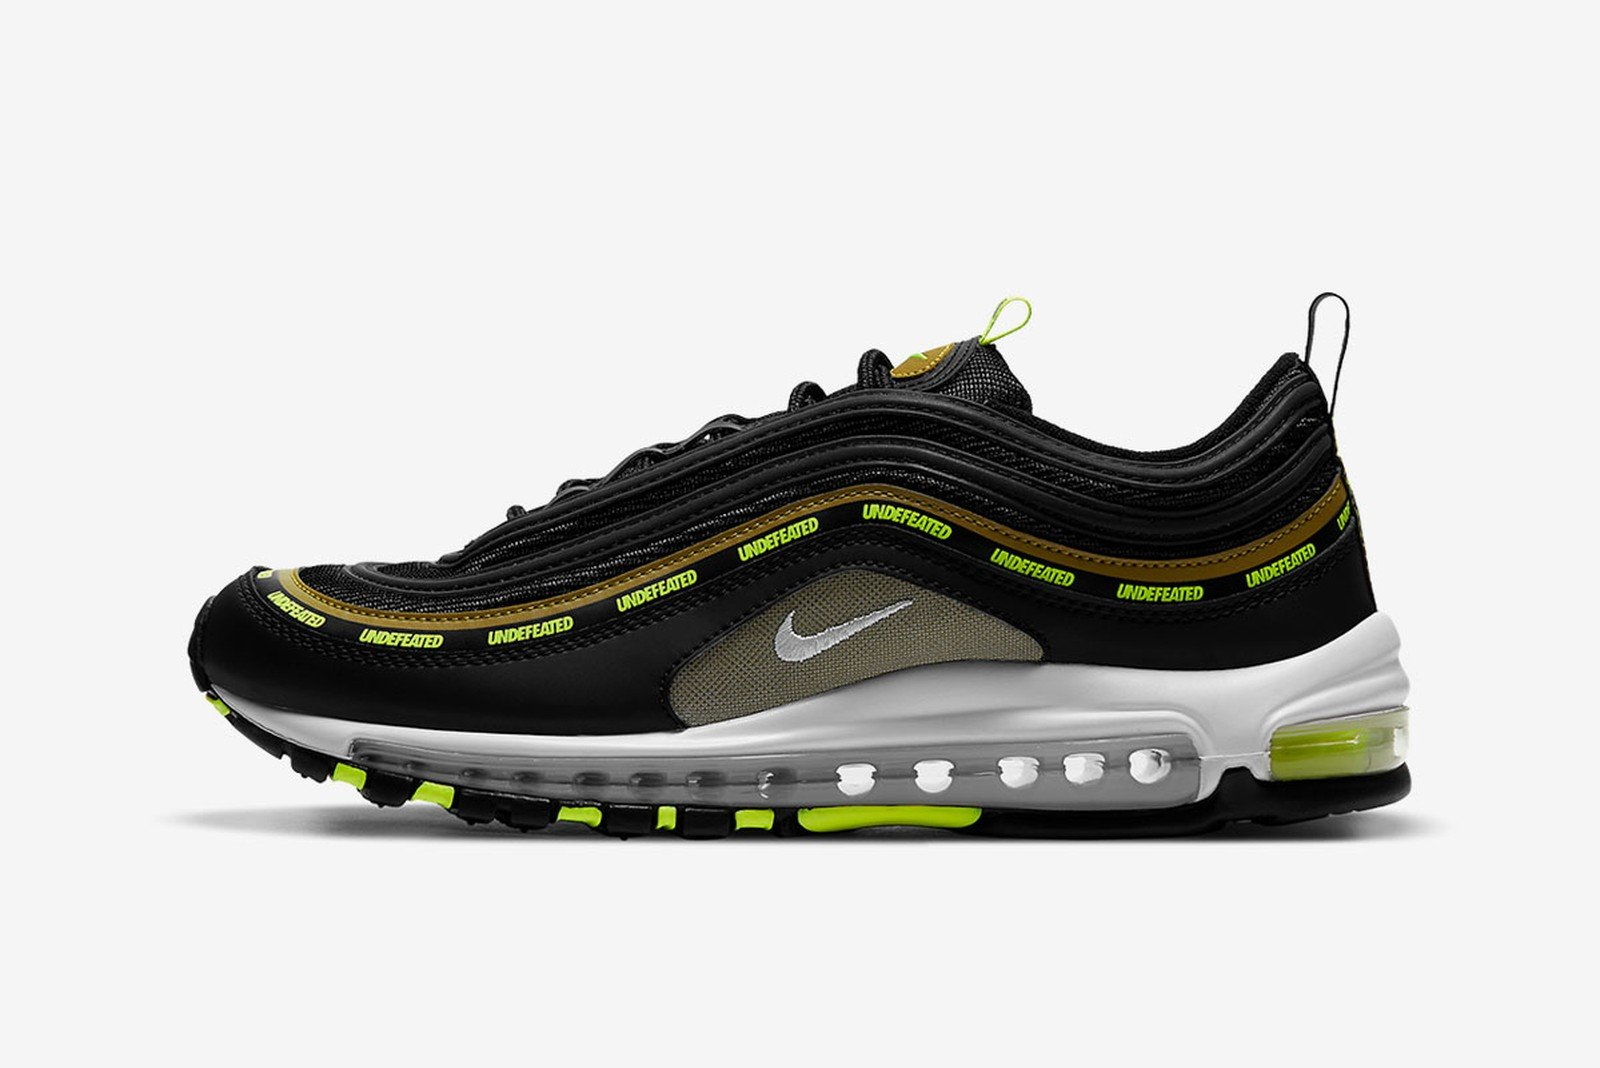 Rumors Has It UNDEFEATED x Nike Air Max 97s Release Soon?